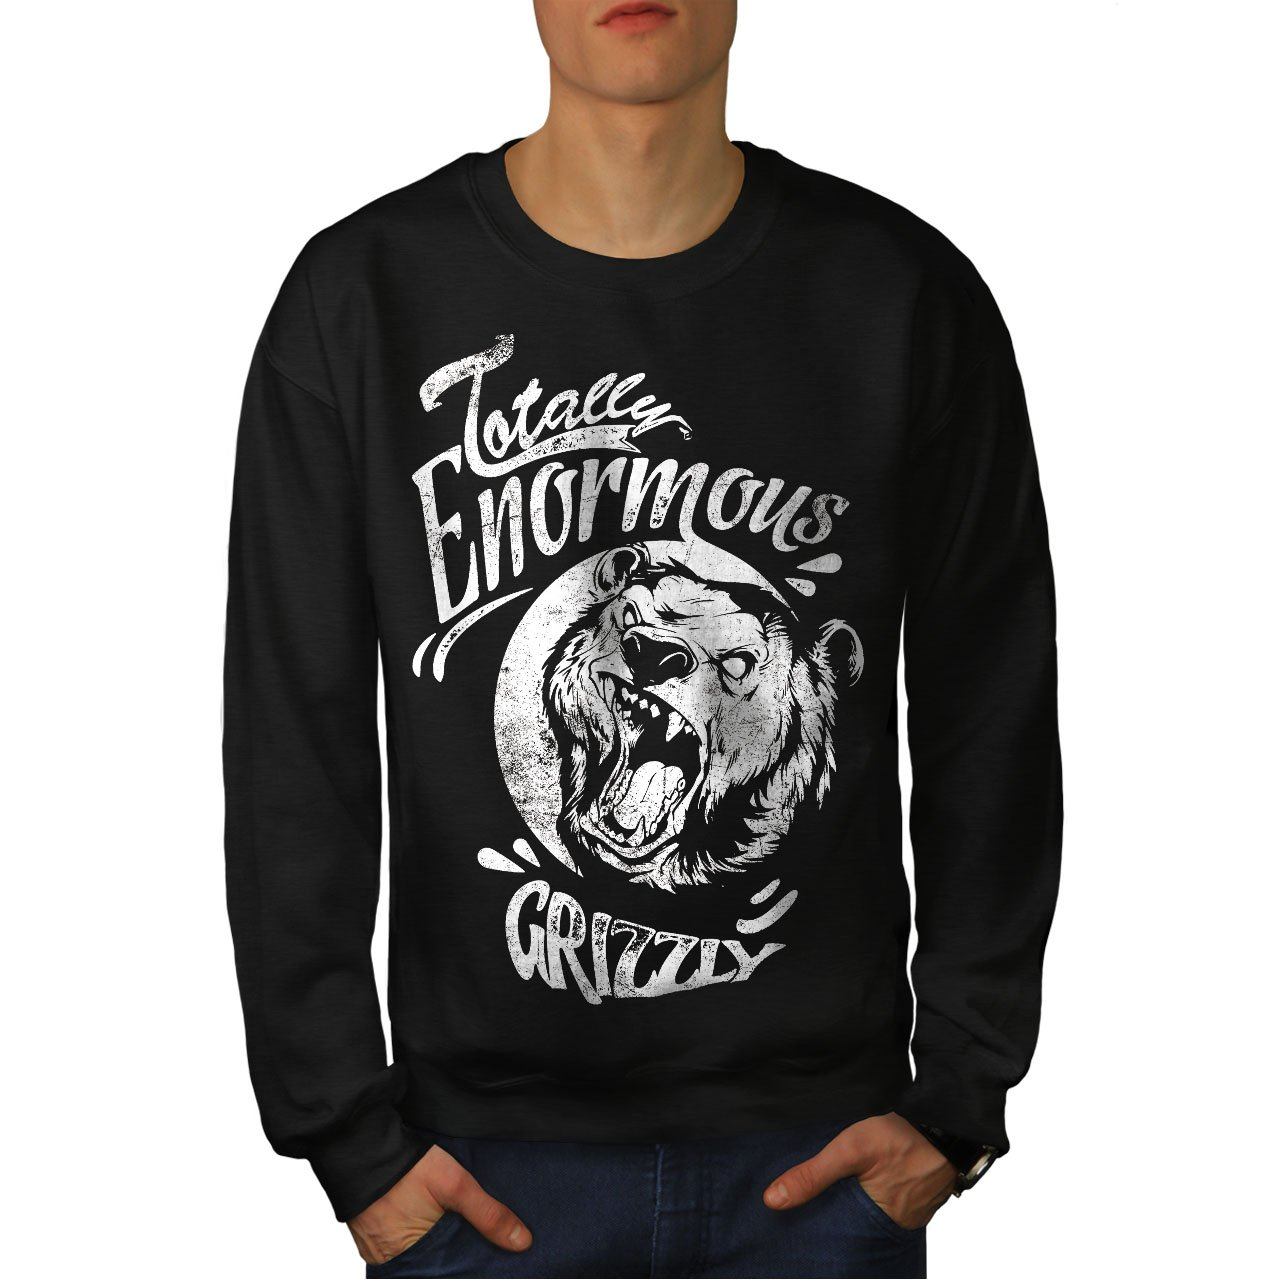 wellcoda Enormous Grizzly Bear Mens Sweatshirt Totally Casual Jumper